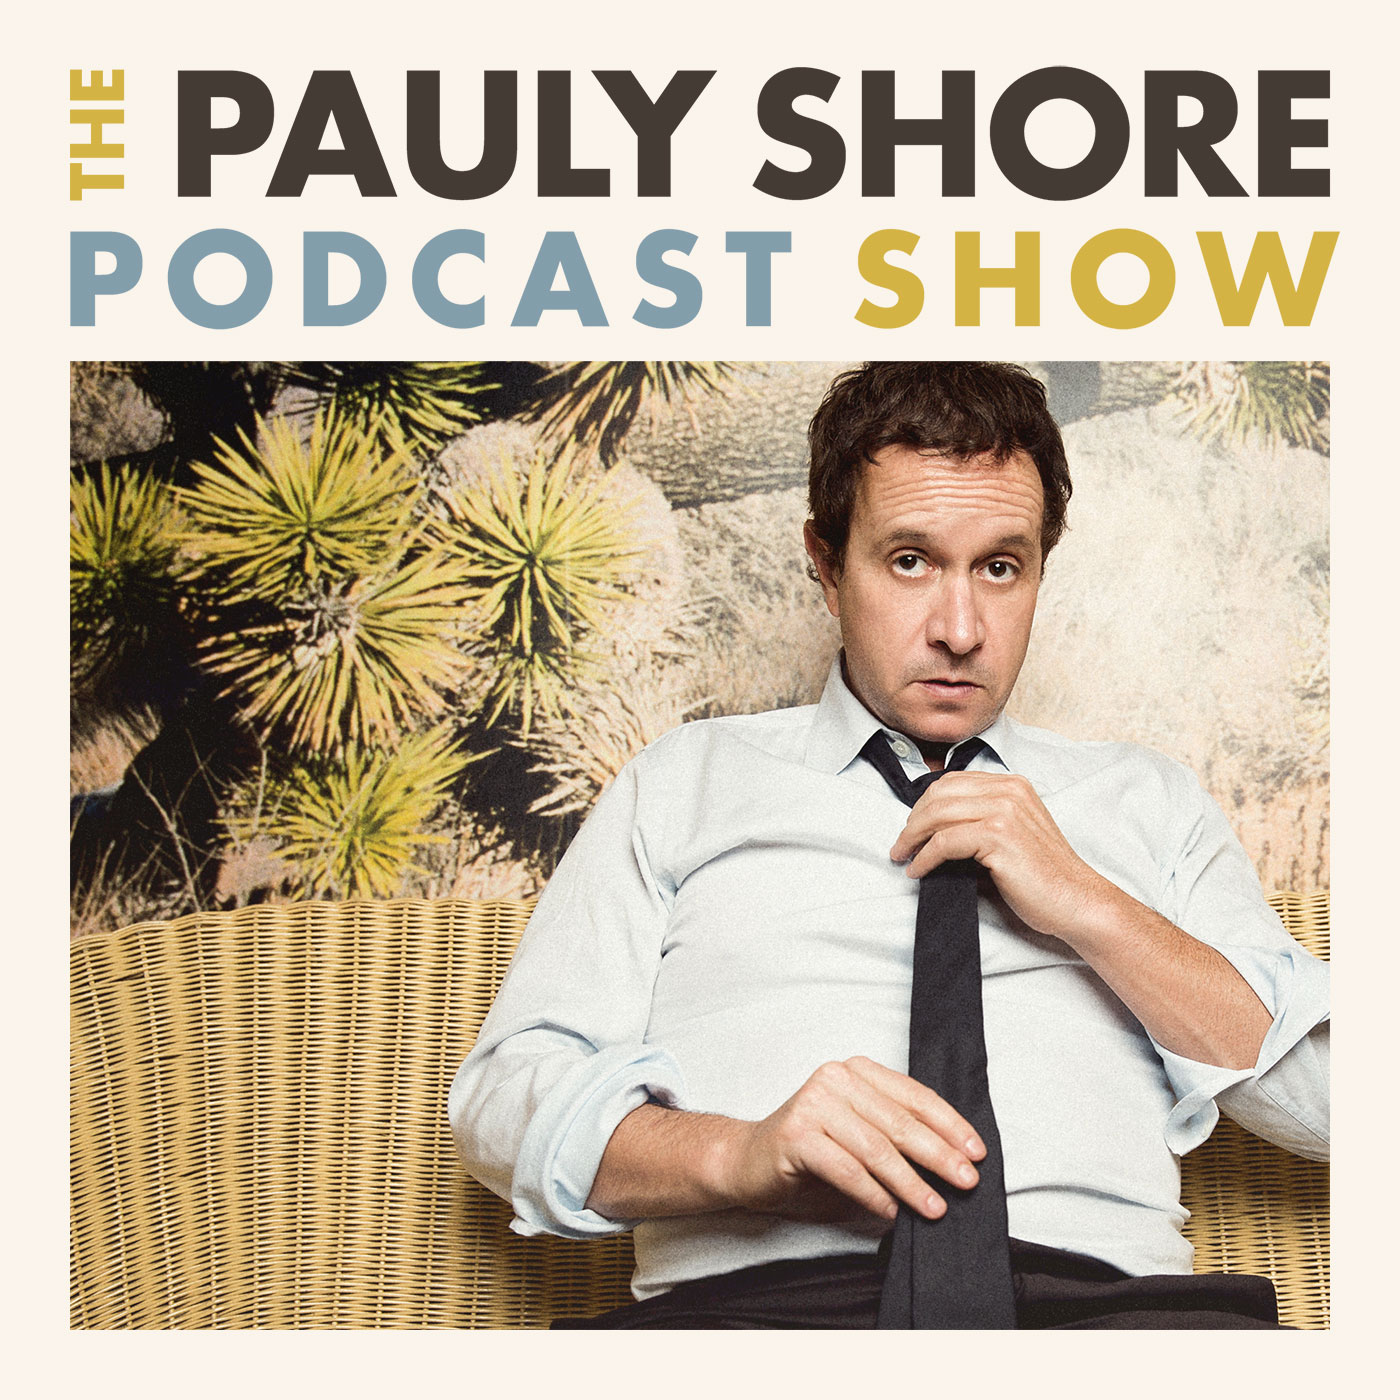 The Pauly Shore Podcast Show show art